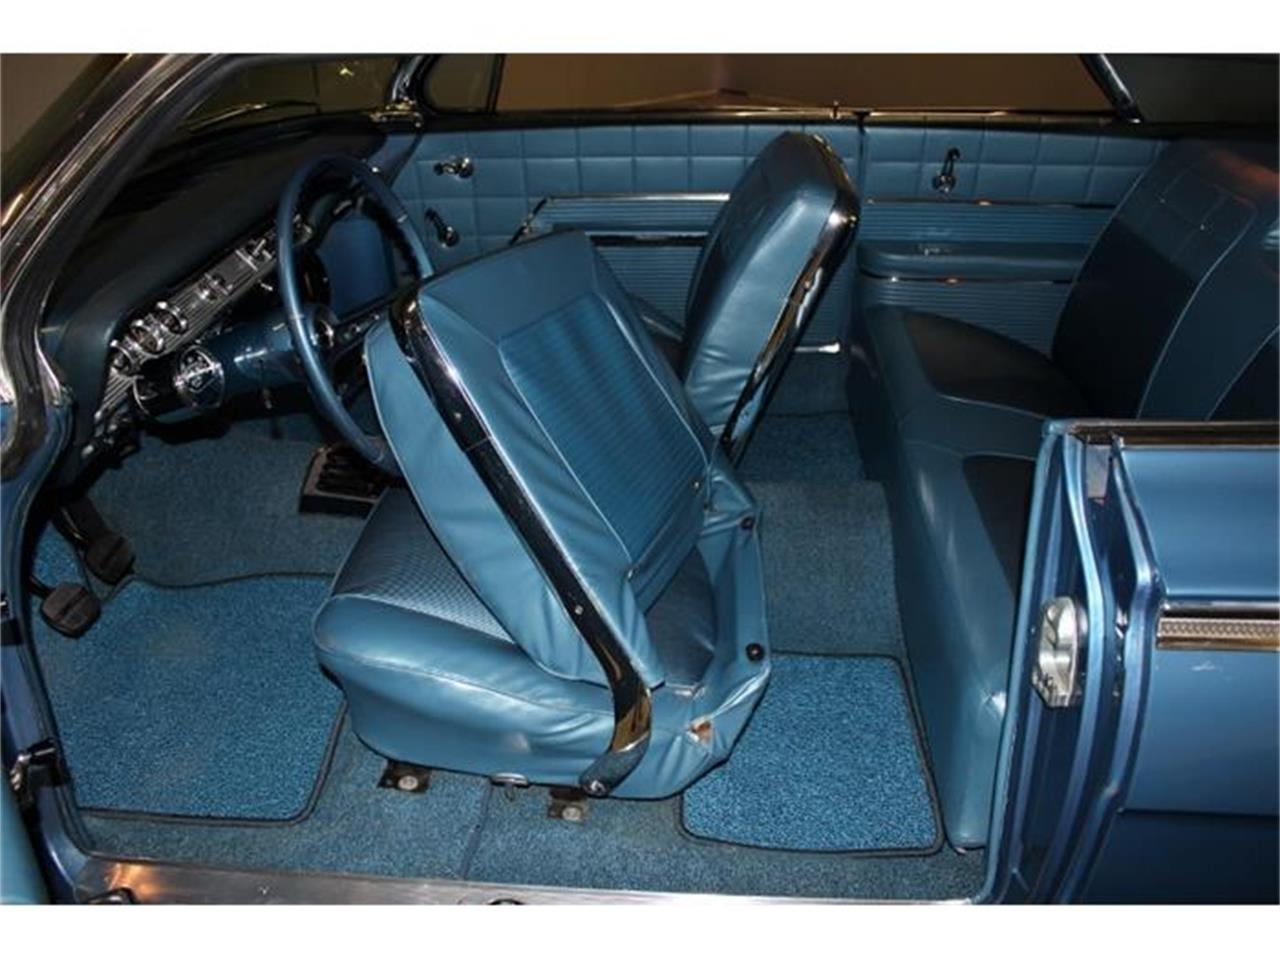 Large Picture of 1962 Impala SS located in Lillington North Carolina - $55,000.00 Offered by East Coast Classic Cars - IT0G